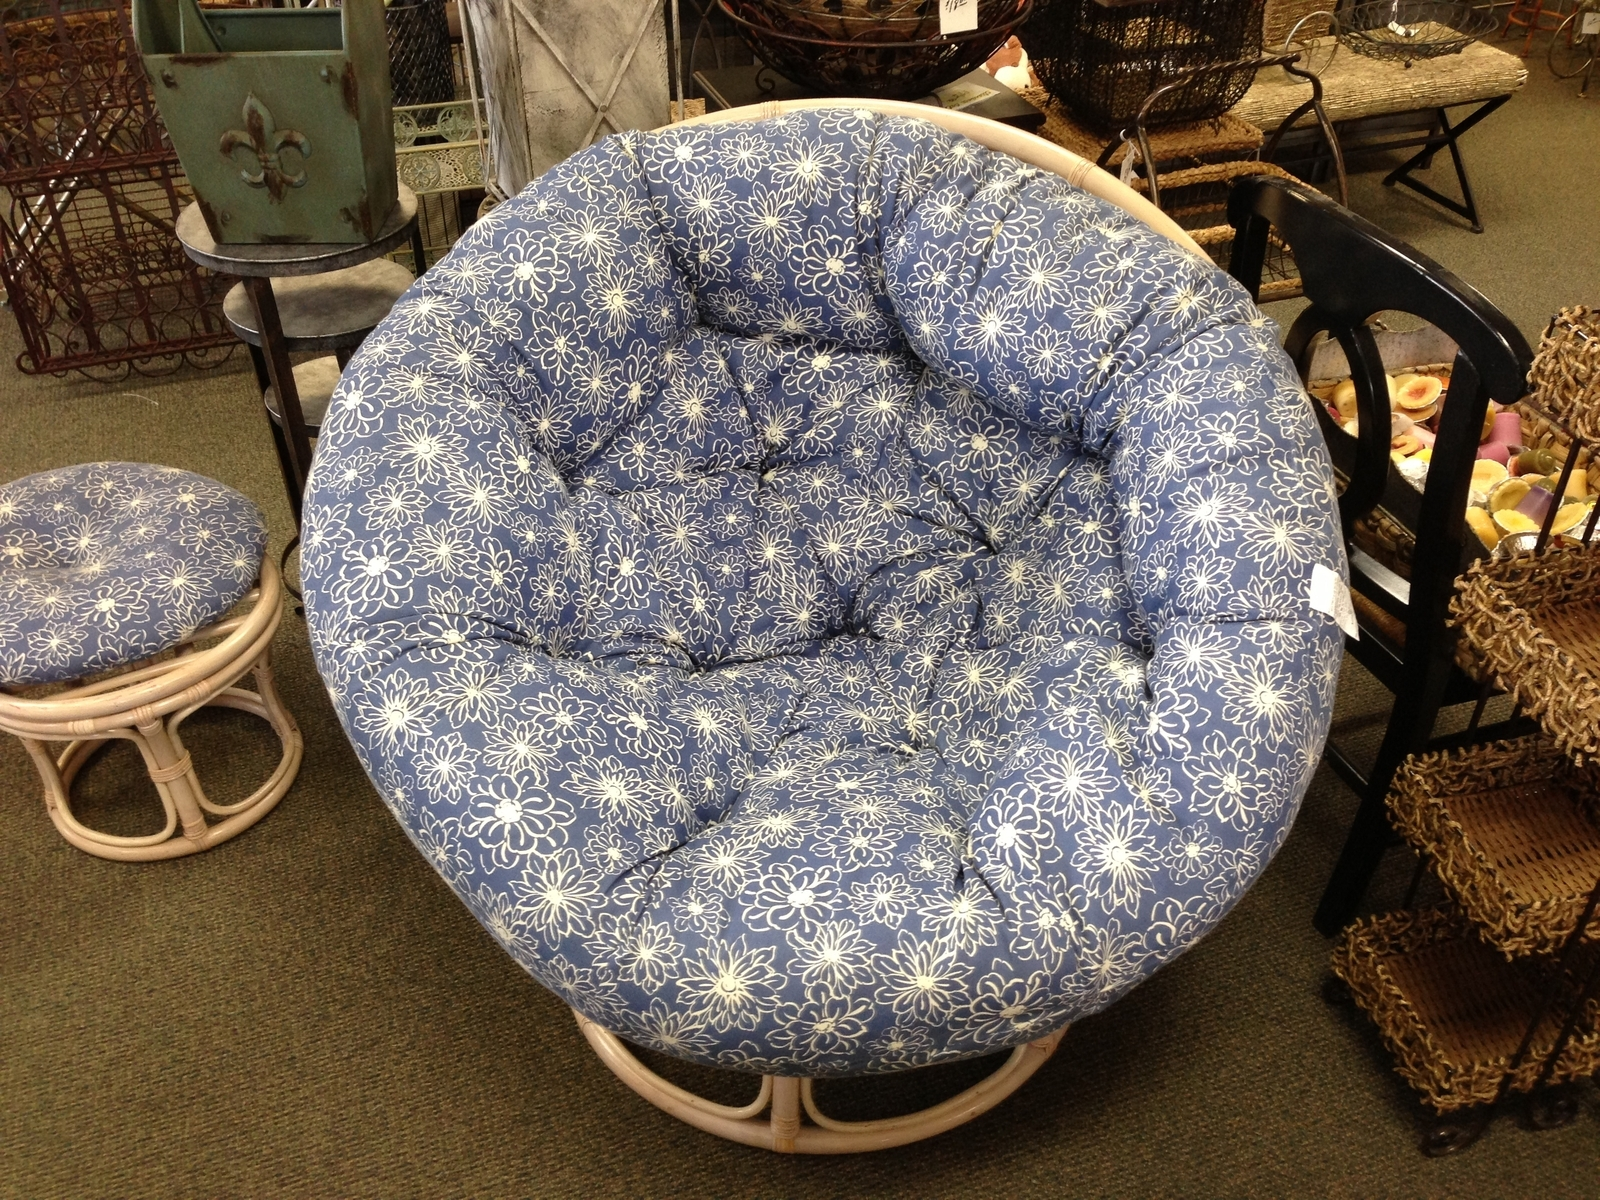 Papasan Cushion | Papasan Cushion Cover Replacement | Papasan Chair World Market